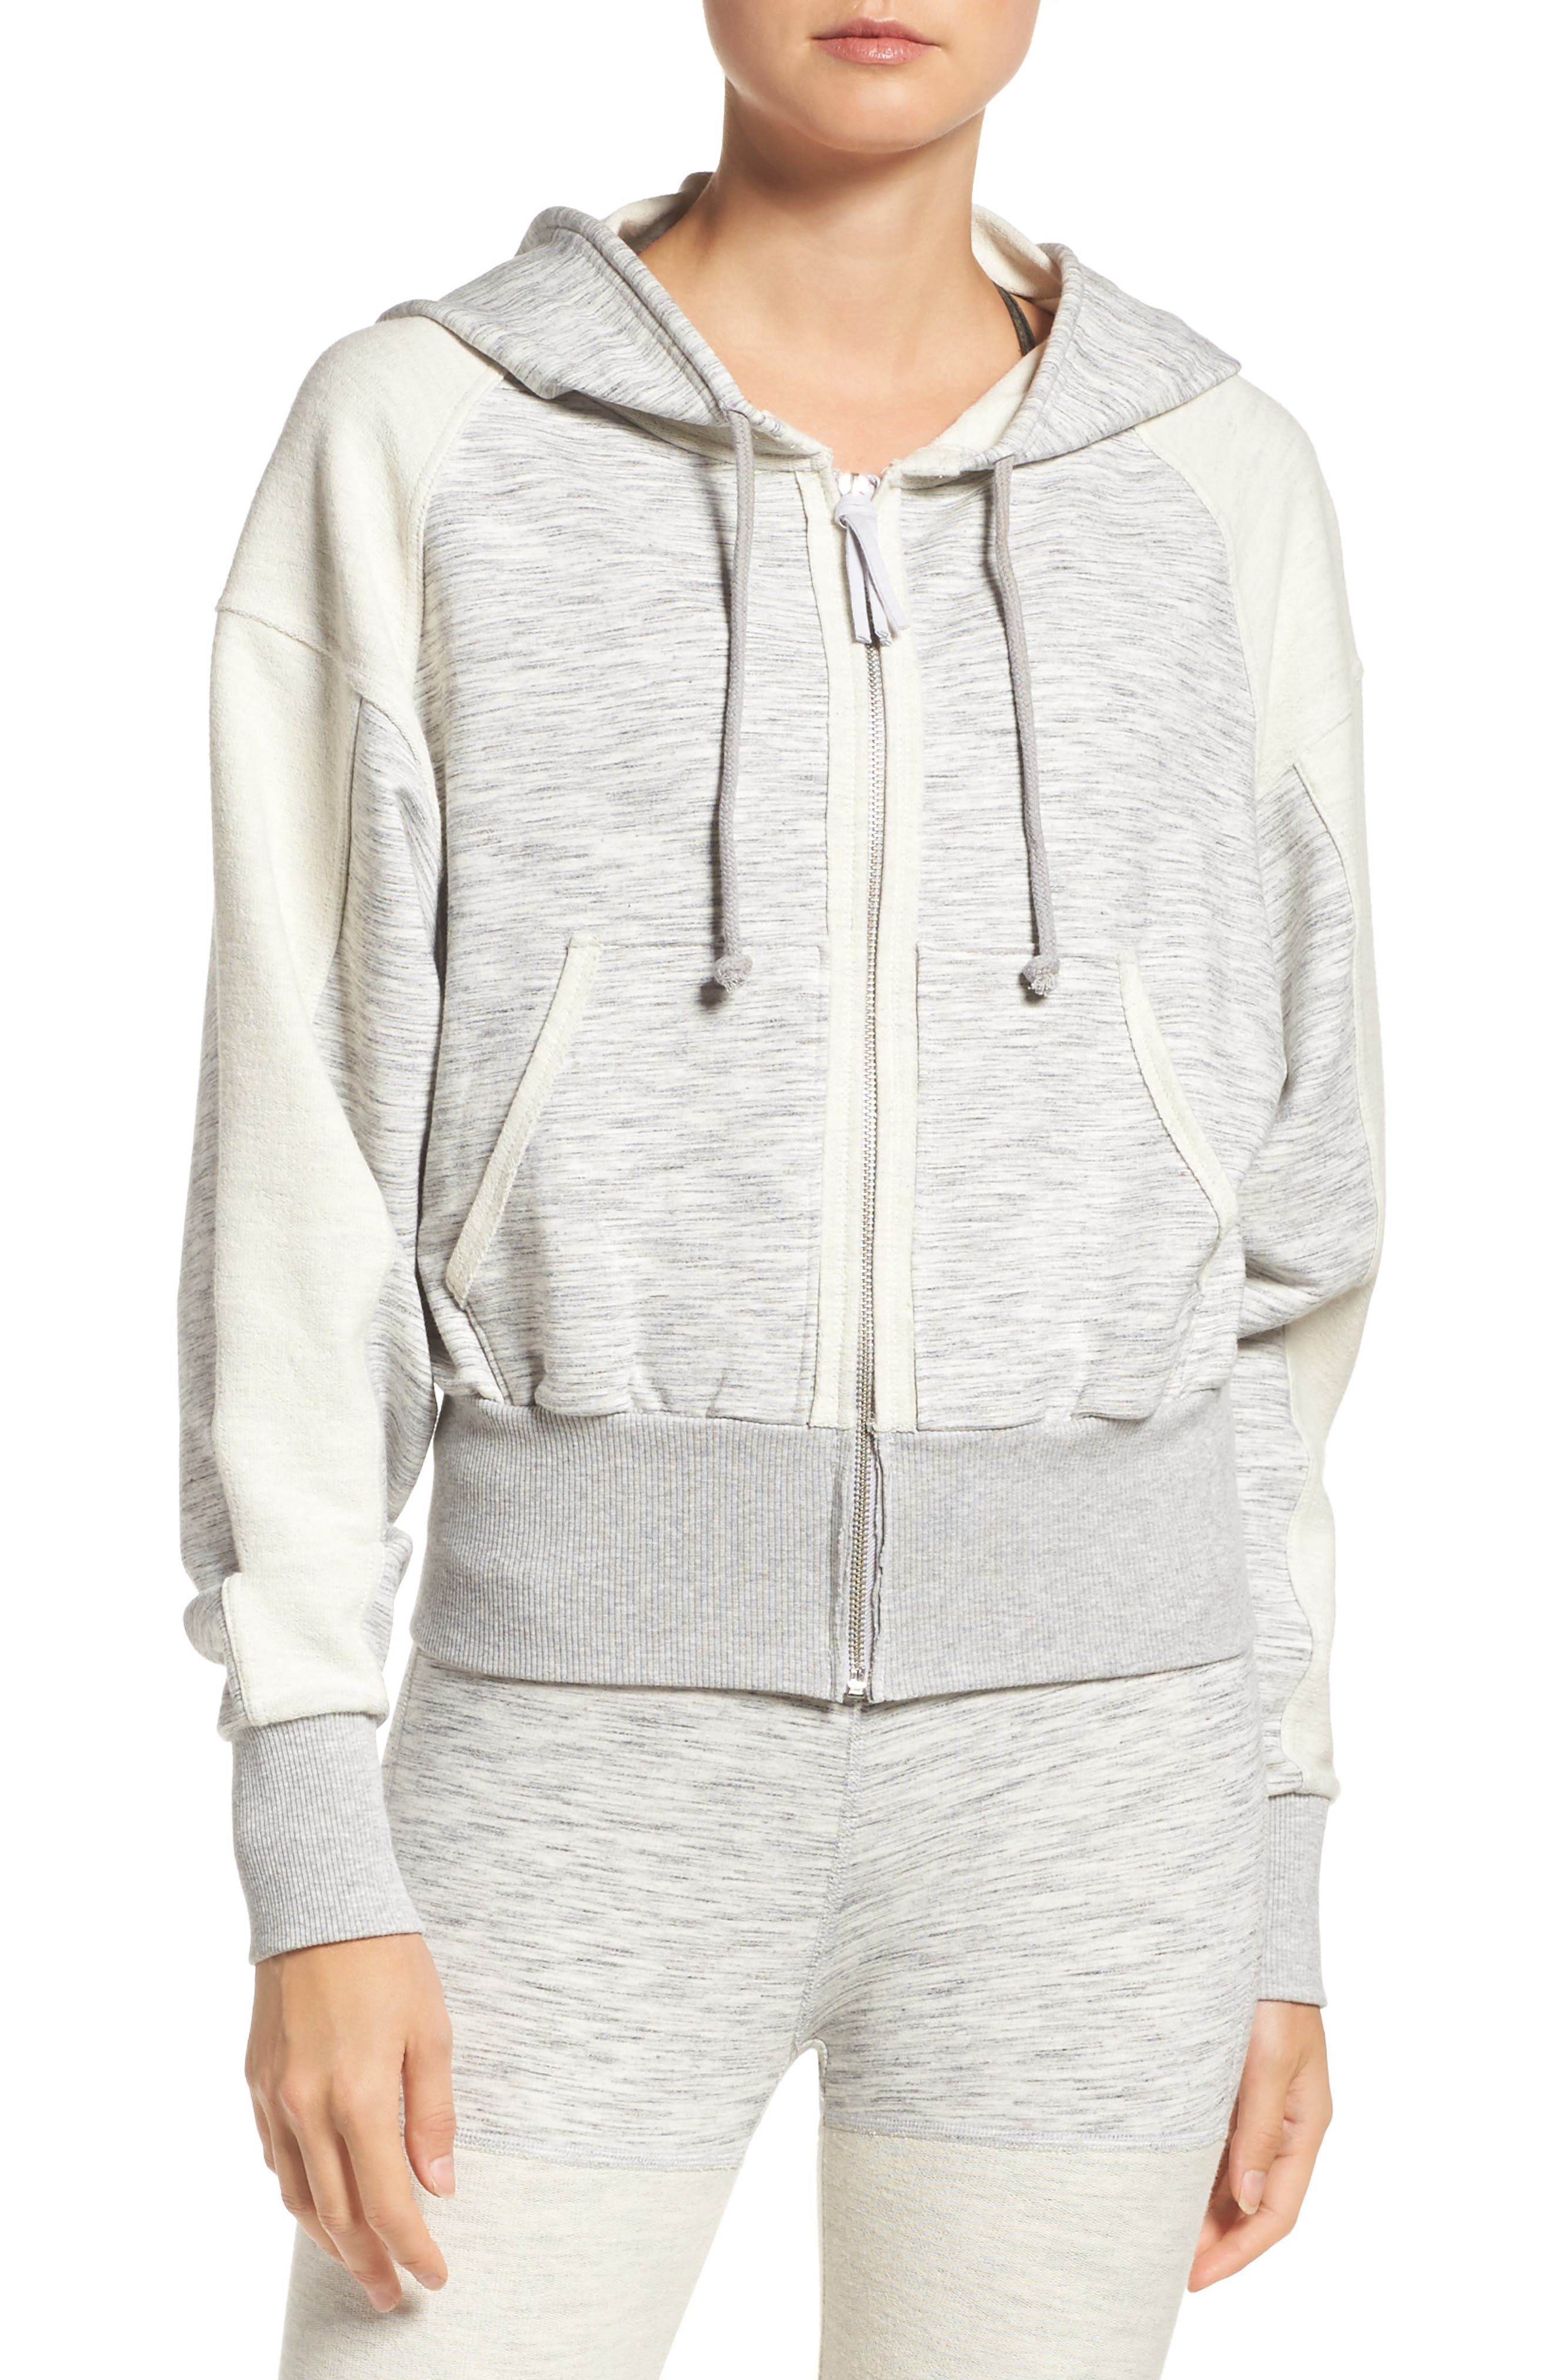 Shadowboxer Hoodie,                             Main thumbnail 1, color,                             GREY